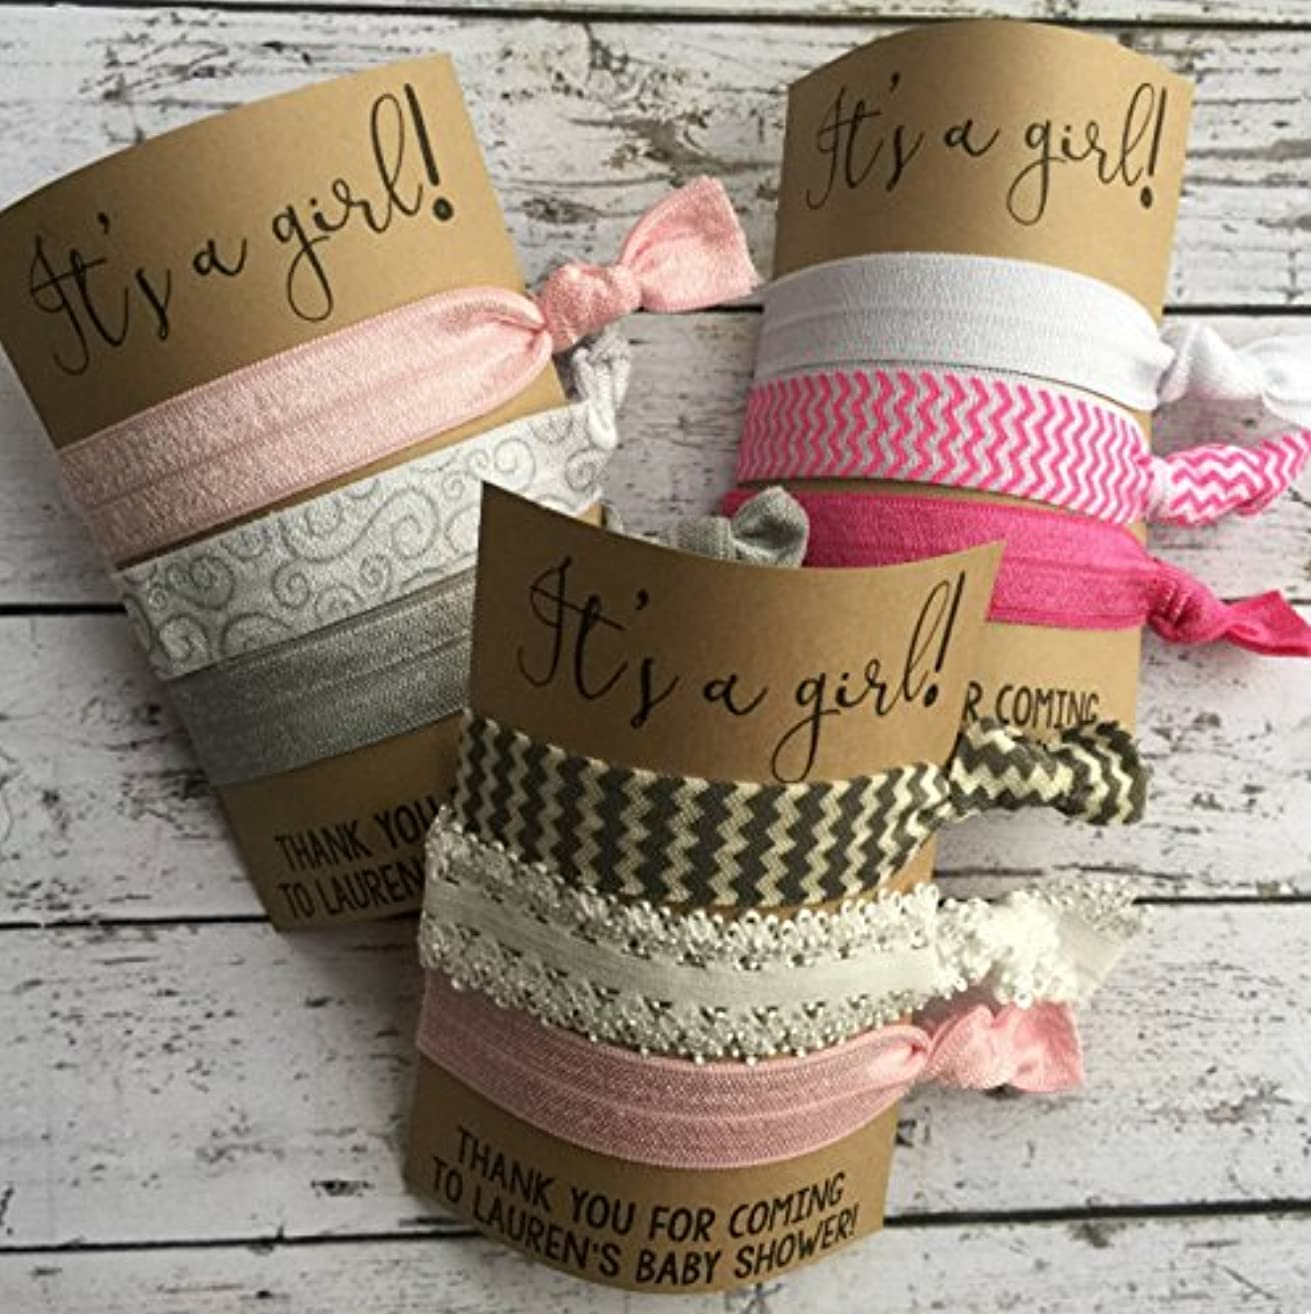 It's a Girl - Baby Shower Hair Ties